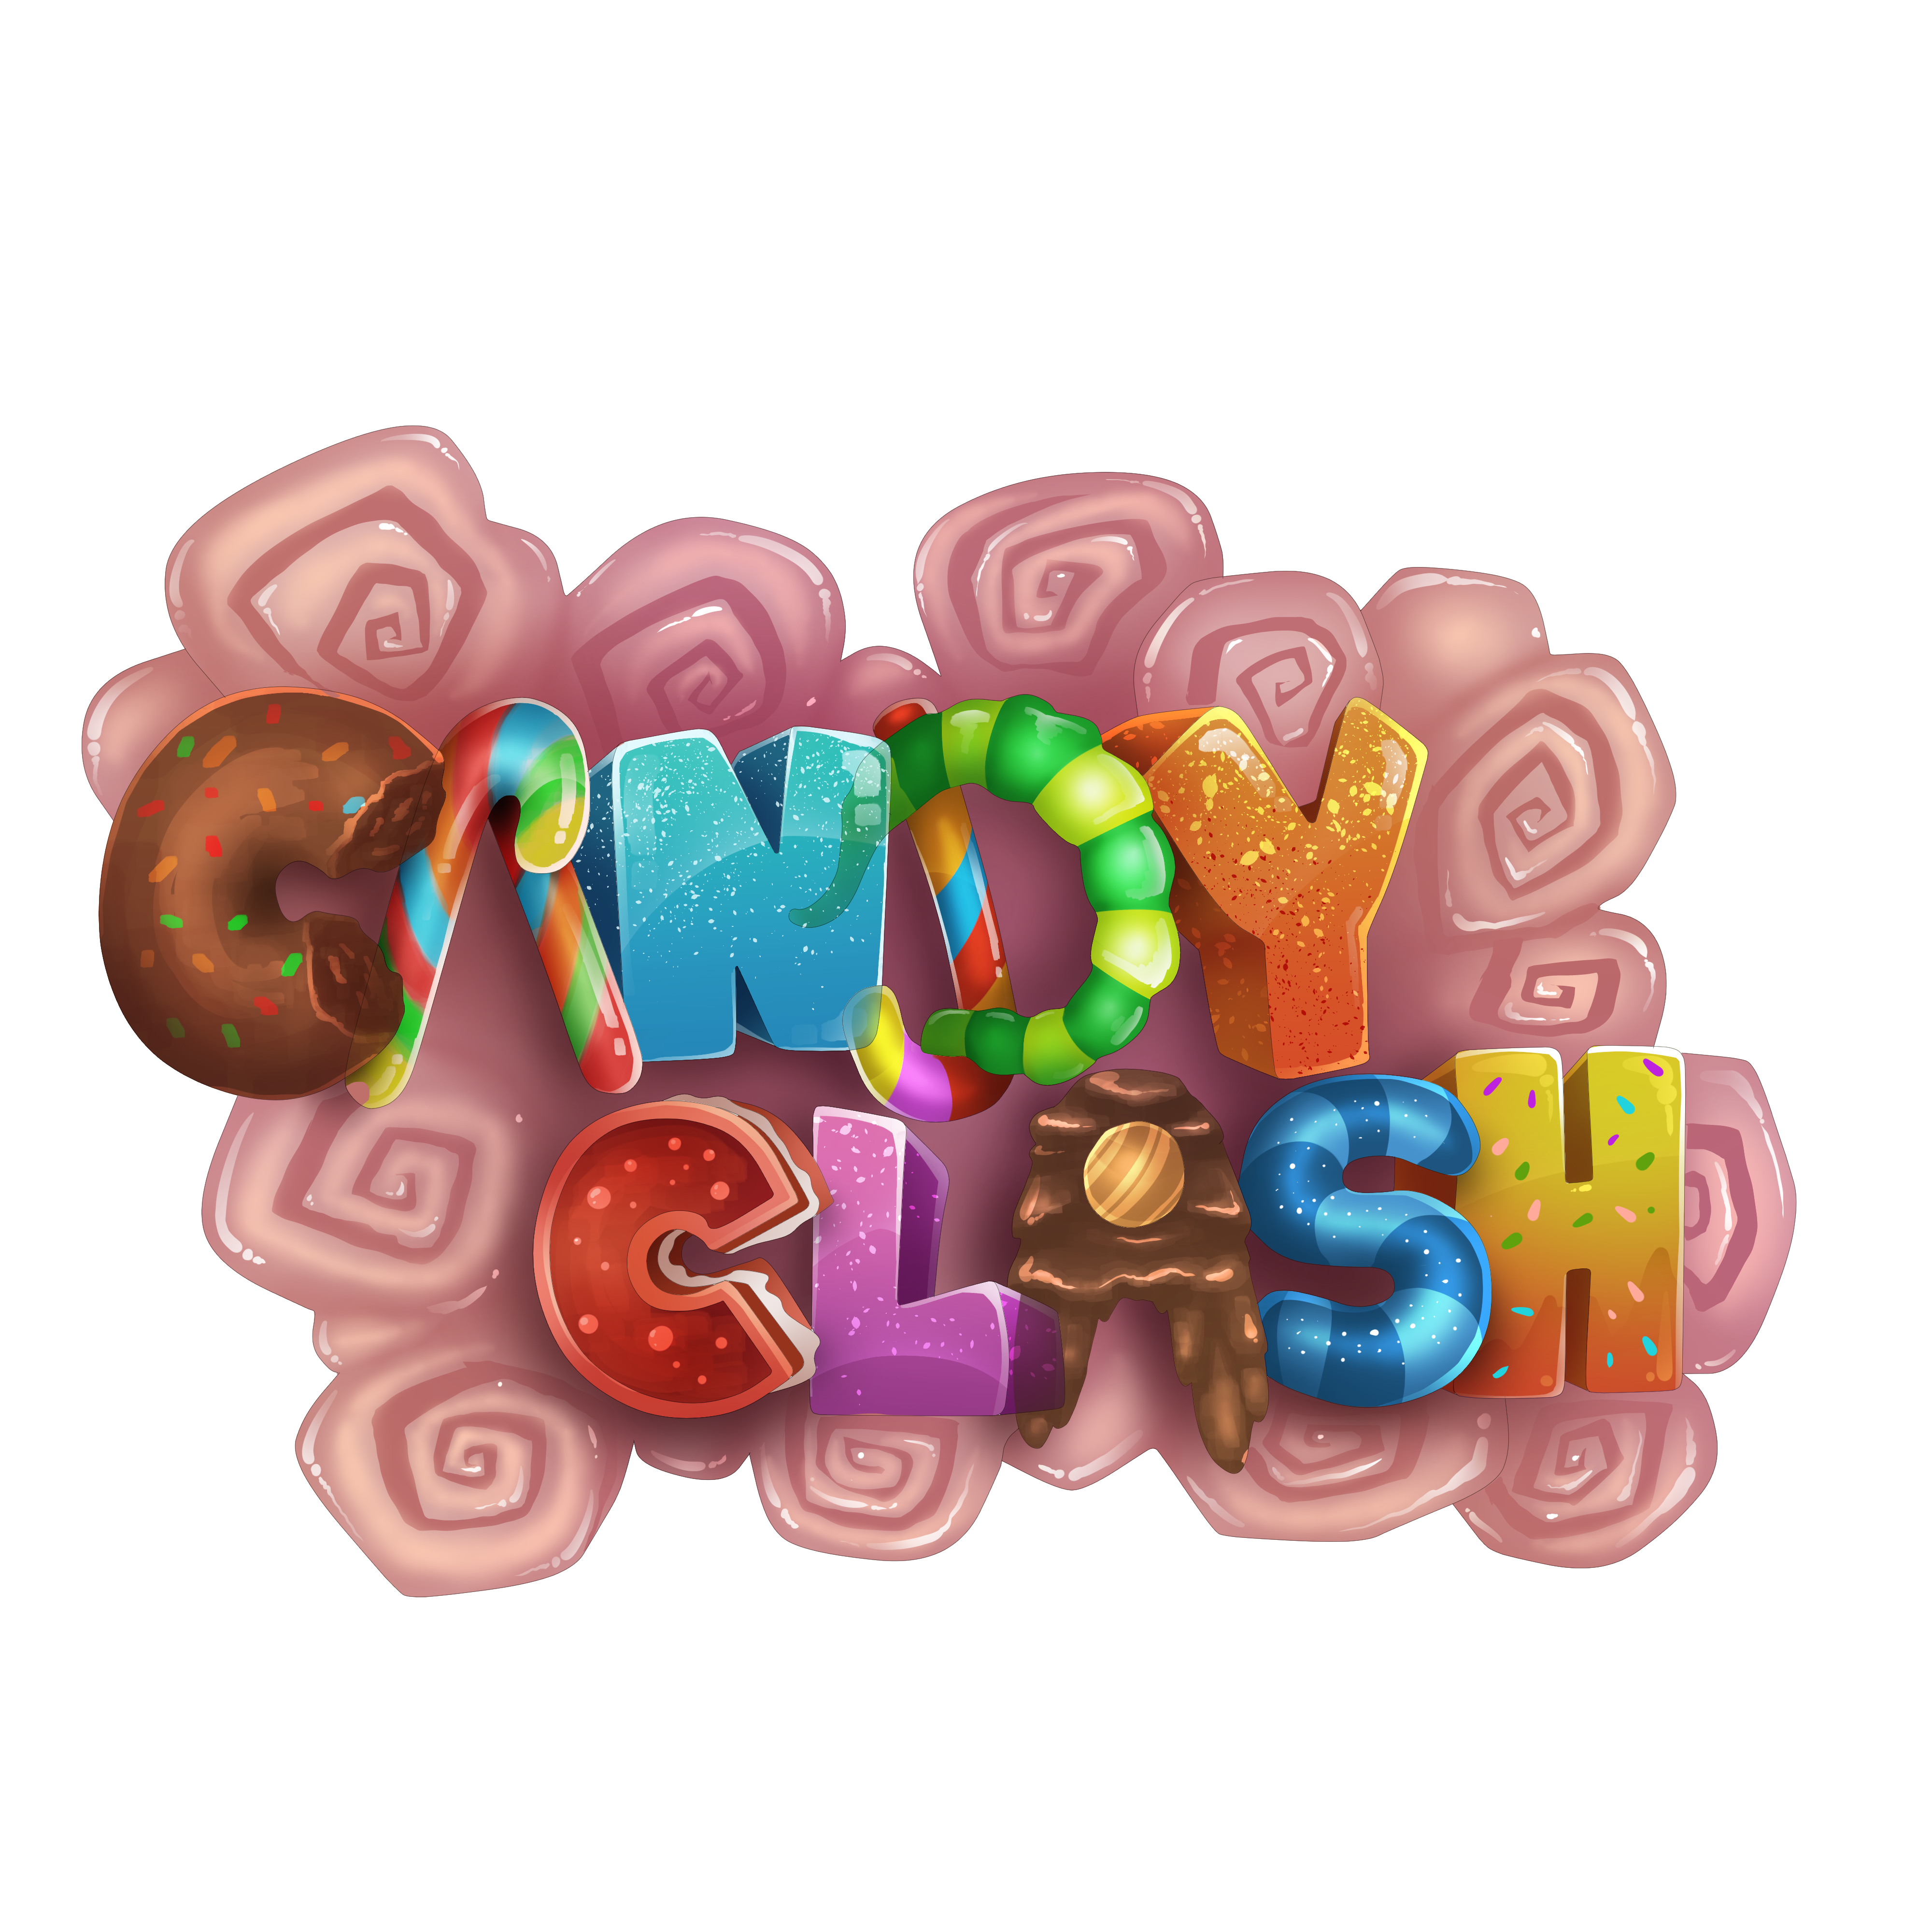 CandyClash